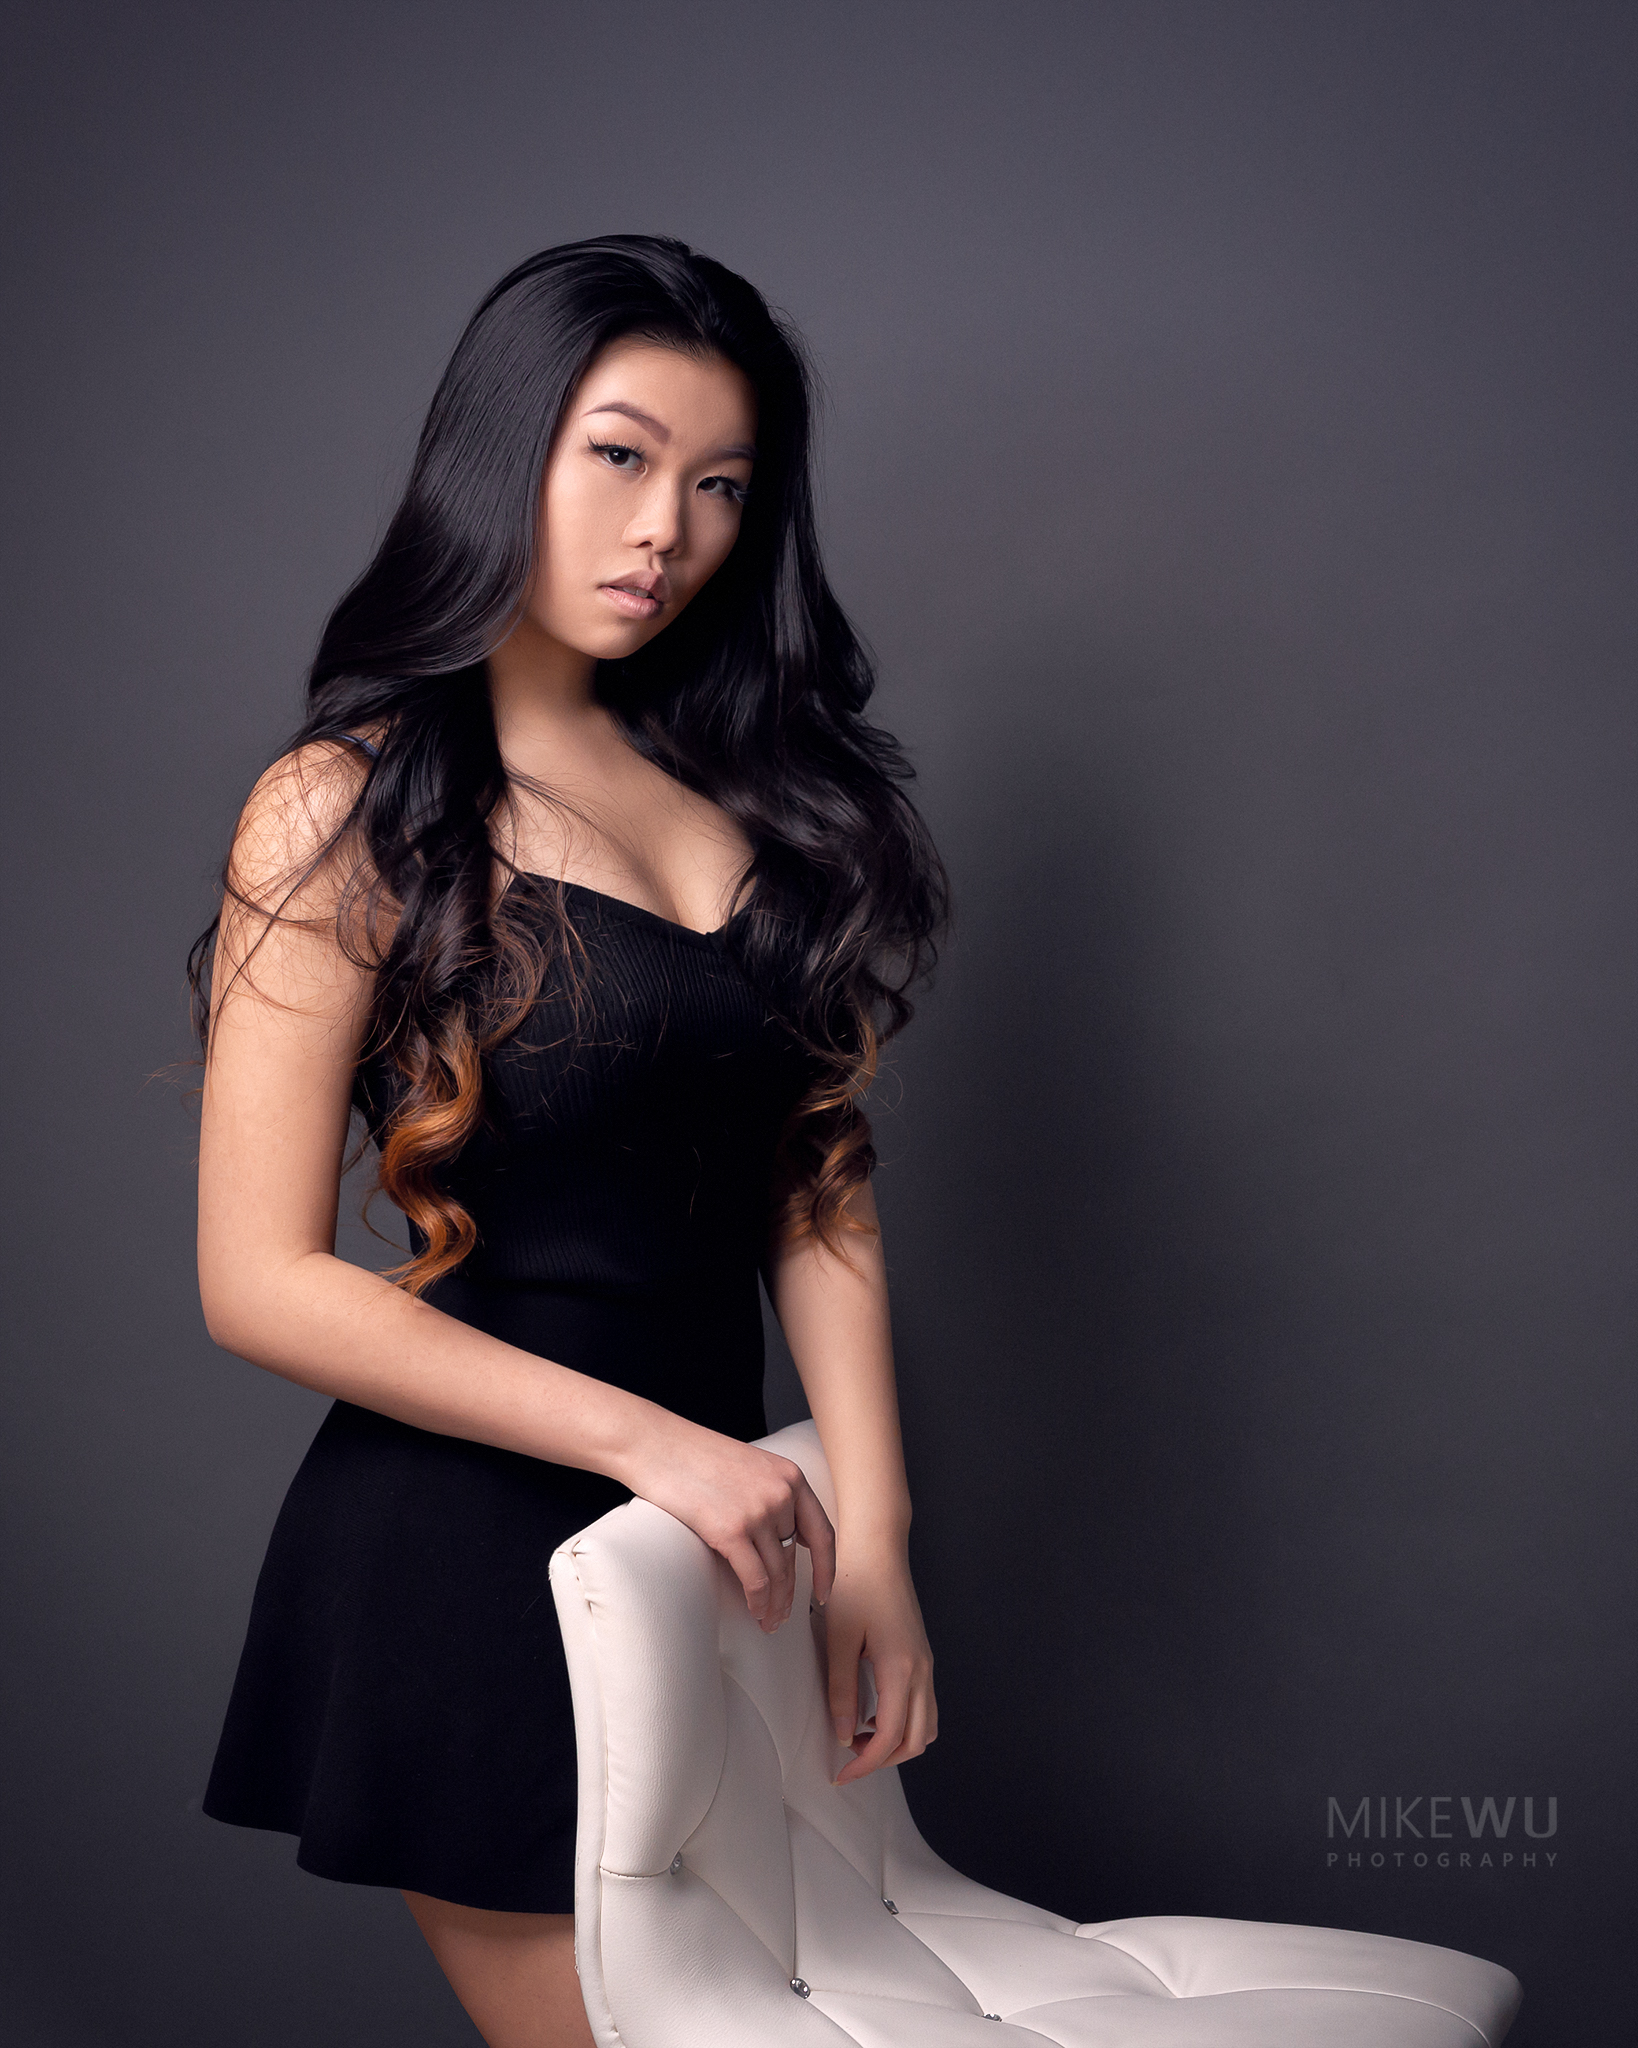 vancouver portrait photographer mike wu traditional indoor studio asian chinese nicole chair beauty wavy hairstyle little black dress